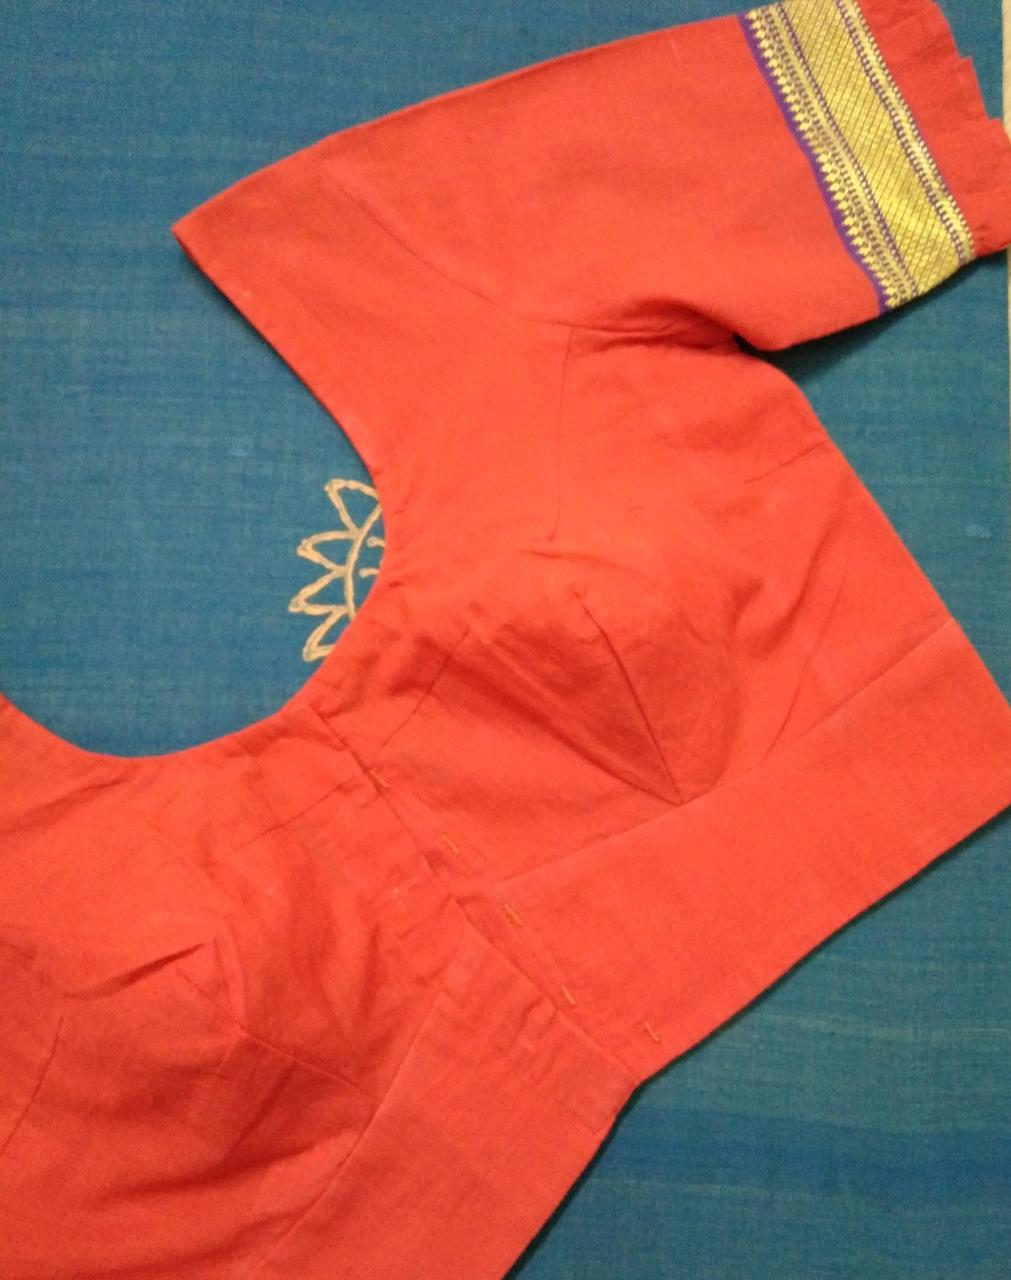 Blouse - Handloom - Mangalagiri Cotton - Orange Ruffle